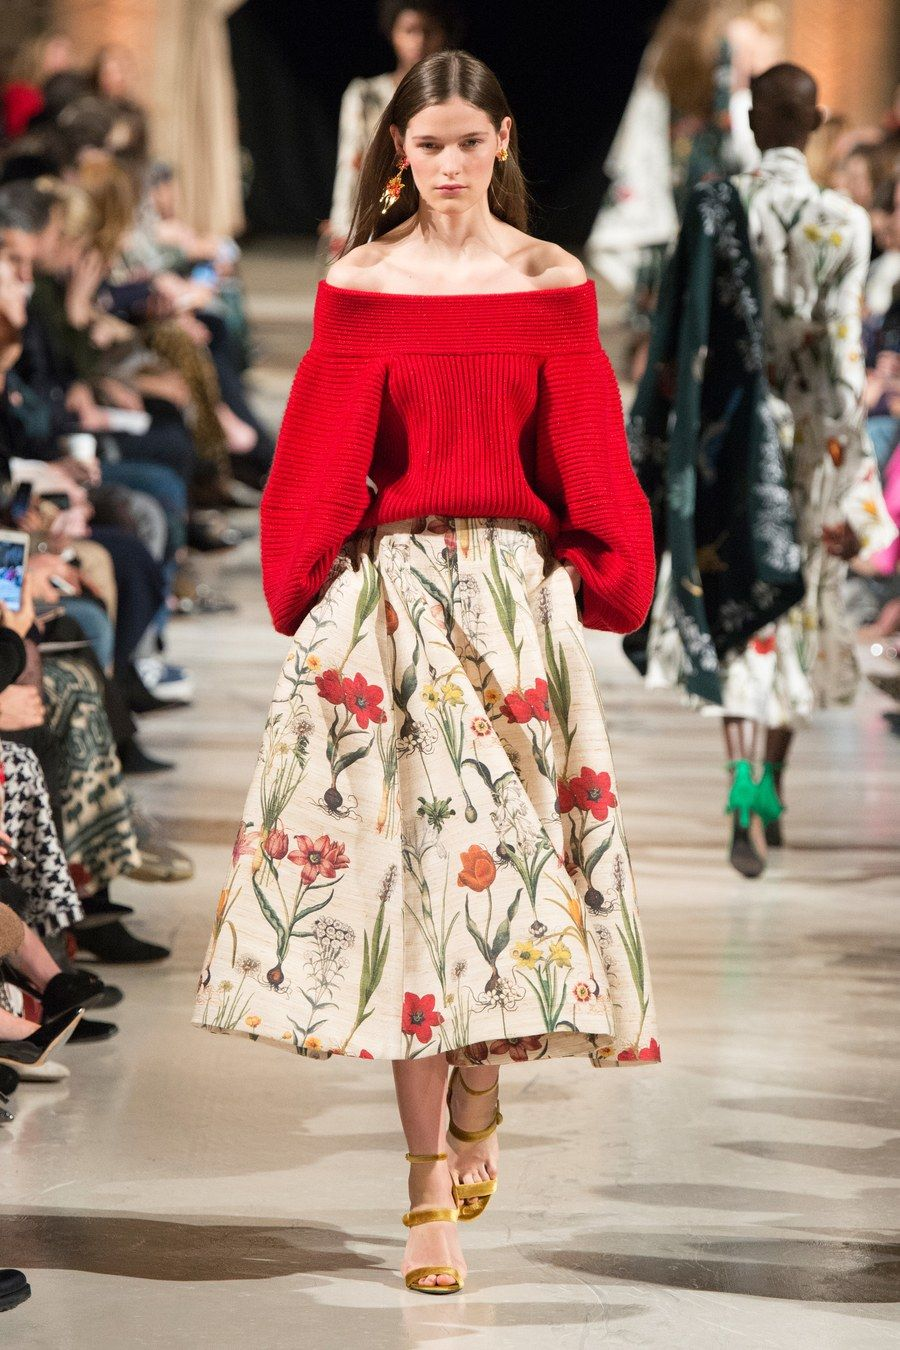 To acquire Renta de la oscar fall runway review pictures trends